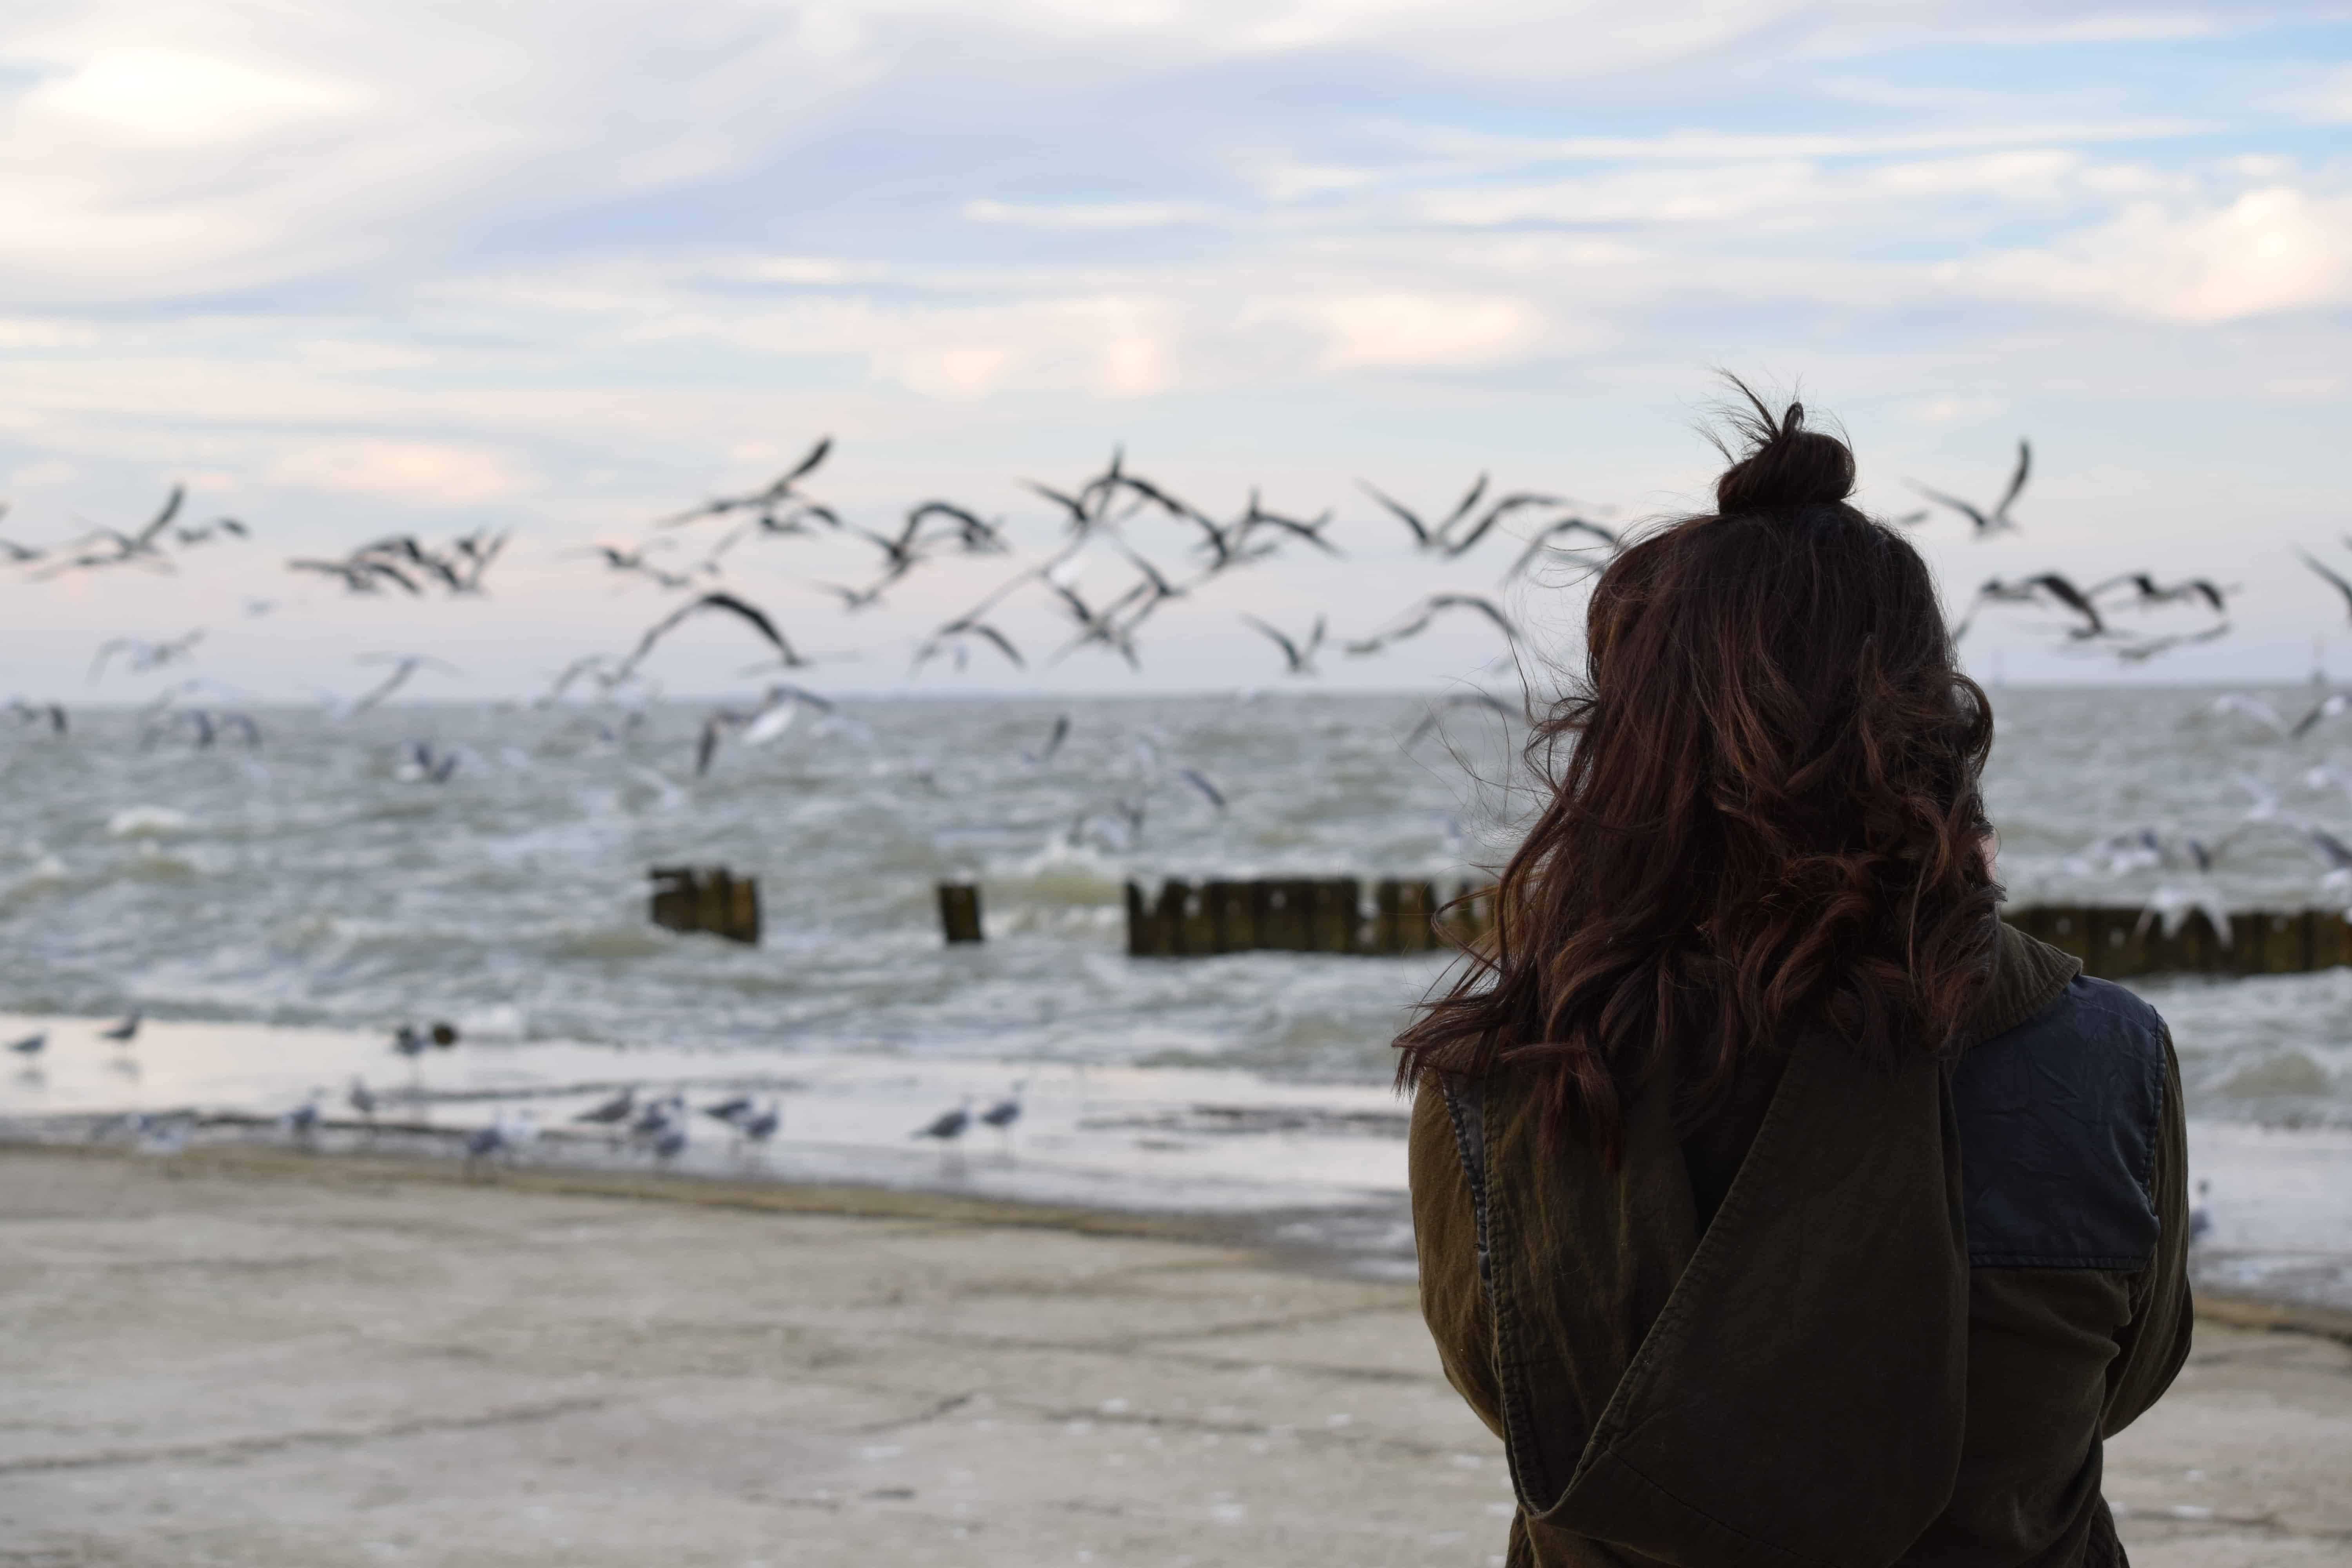 """Finding your purpose in life is a challenge when struggling and asking """"What is the meaning of life?"""" Active living can help you discover your life purpose."""